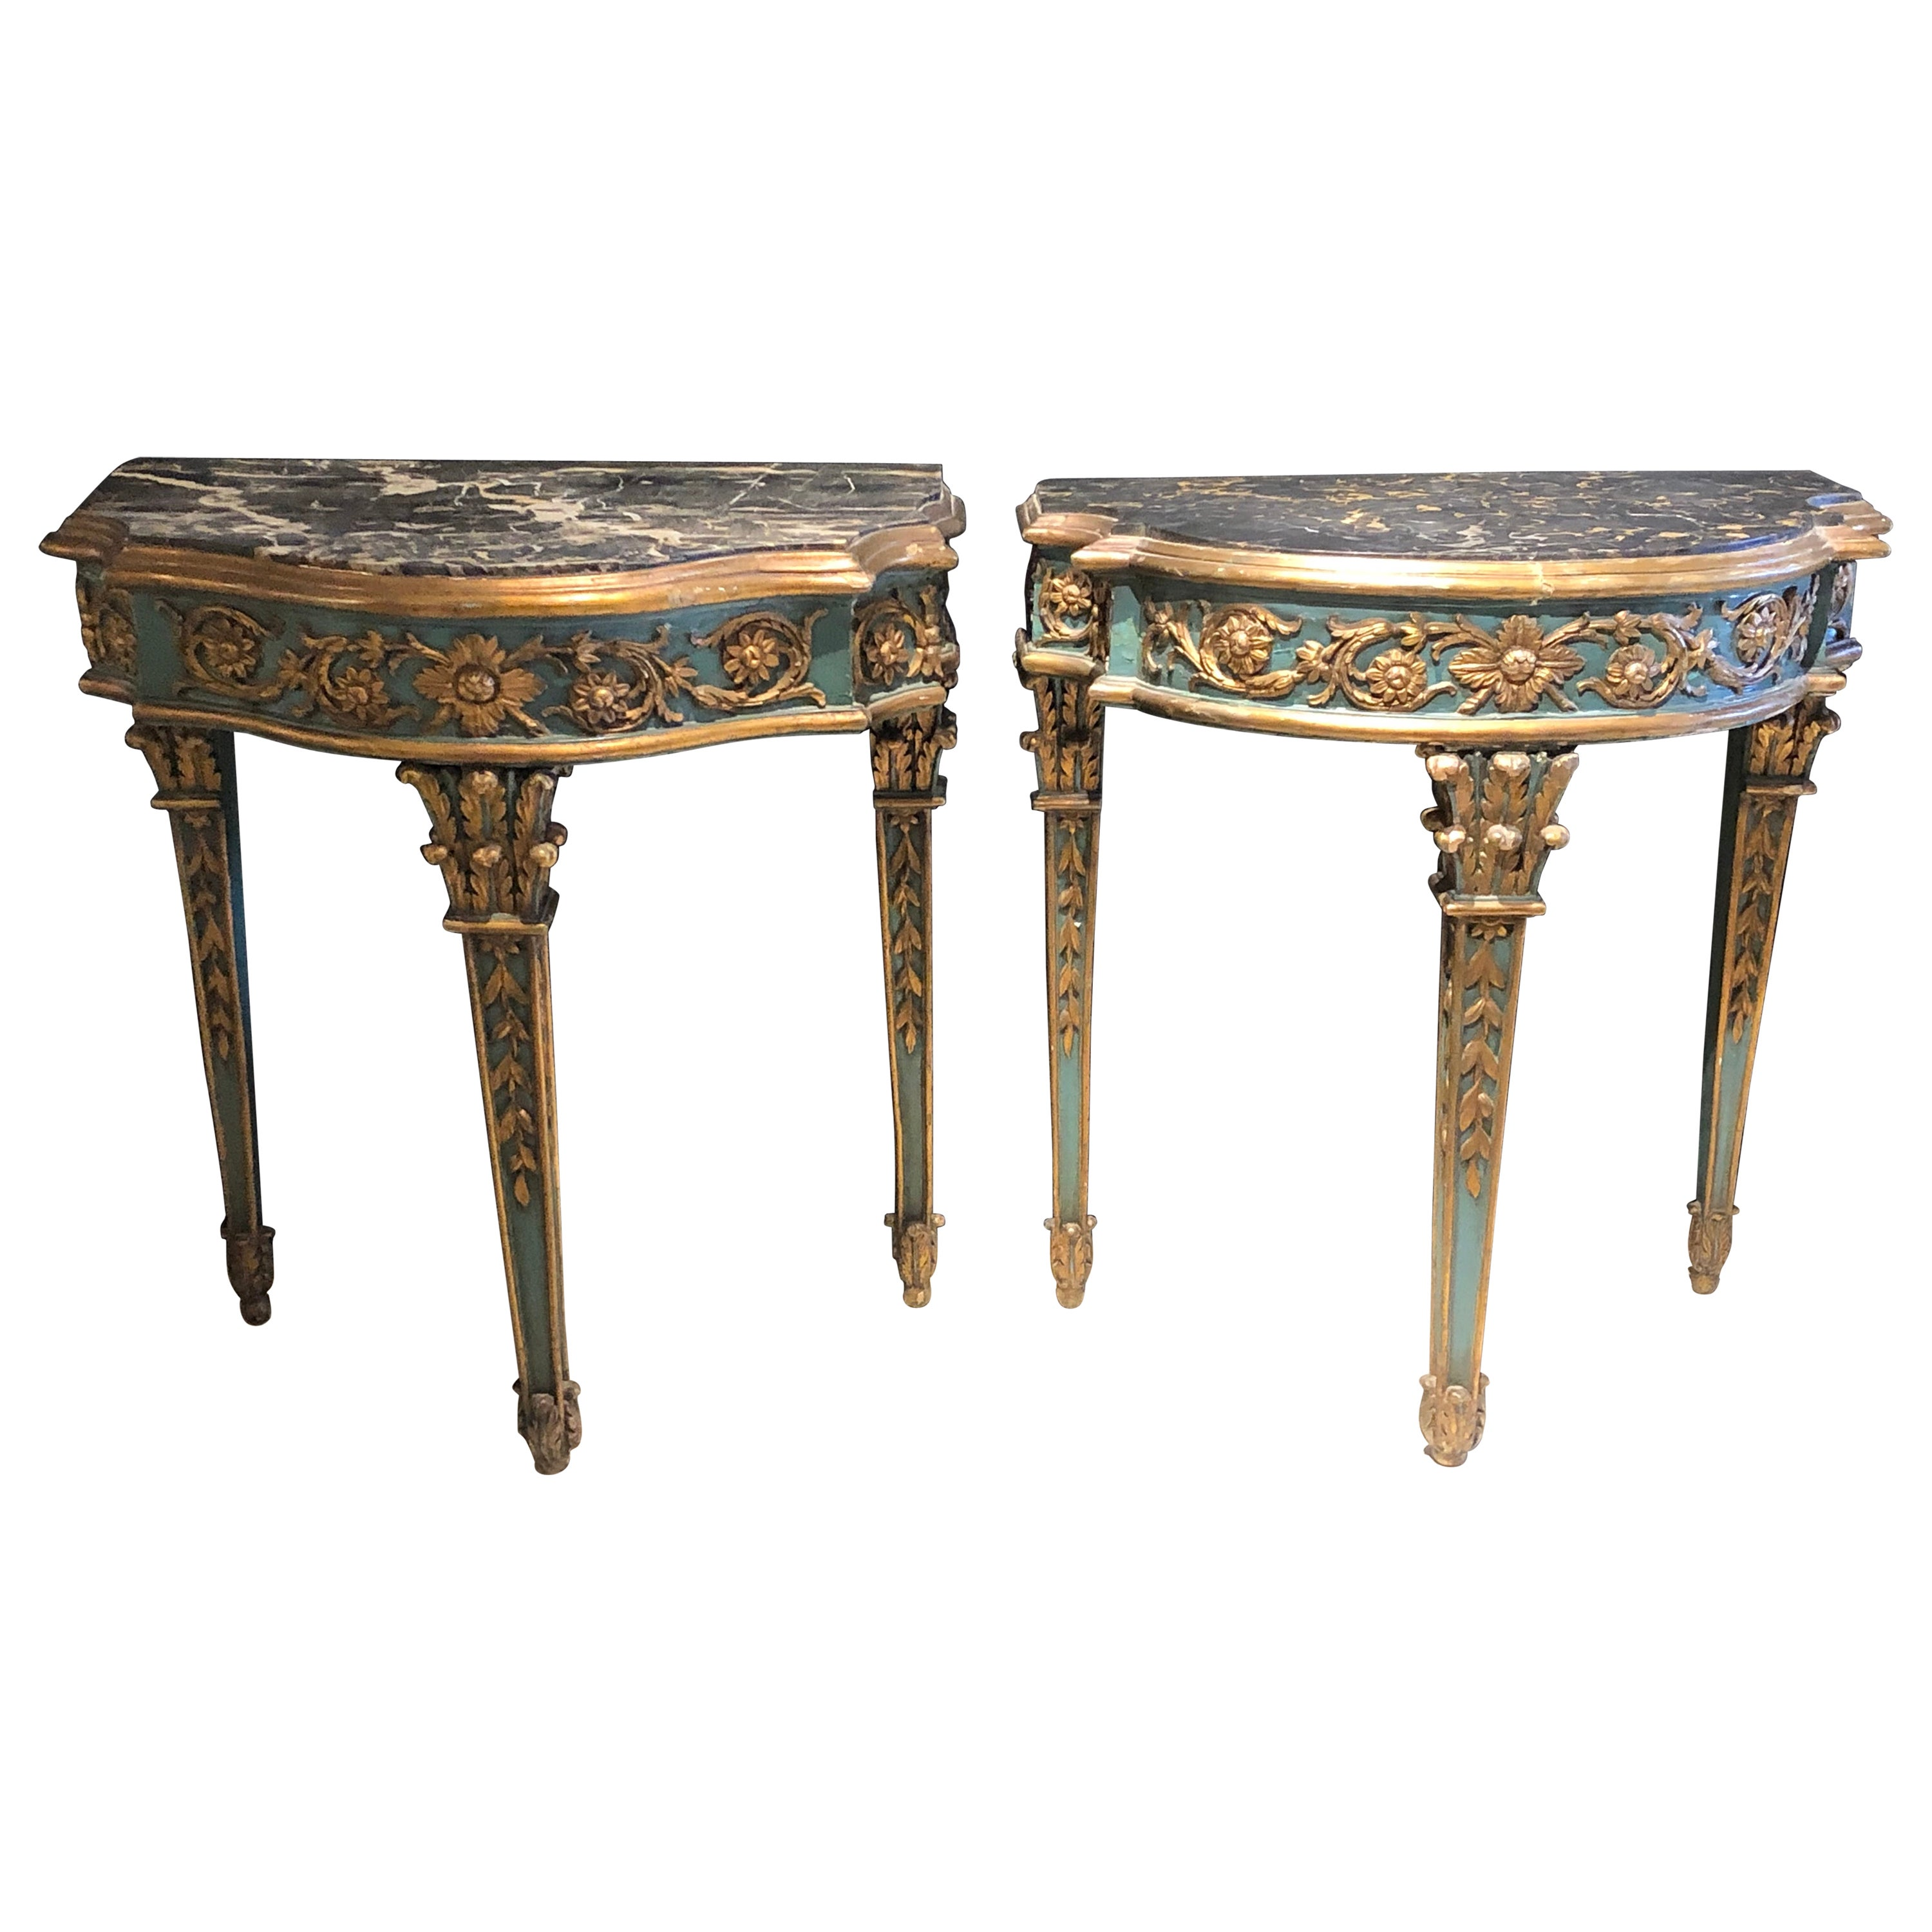 Pair of 19th Century French Console/Sofa Tables Parcel-Gilt & Painted Marble Top